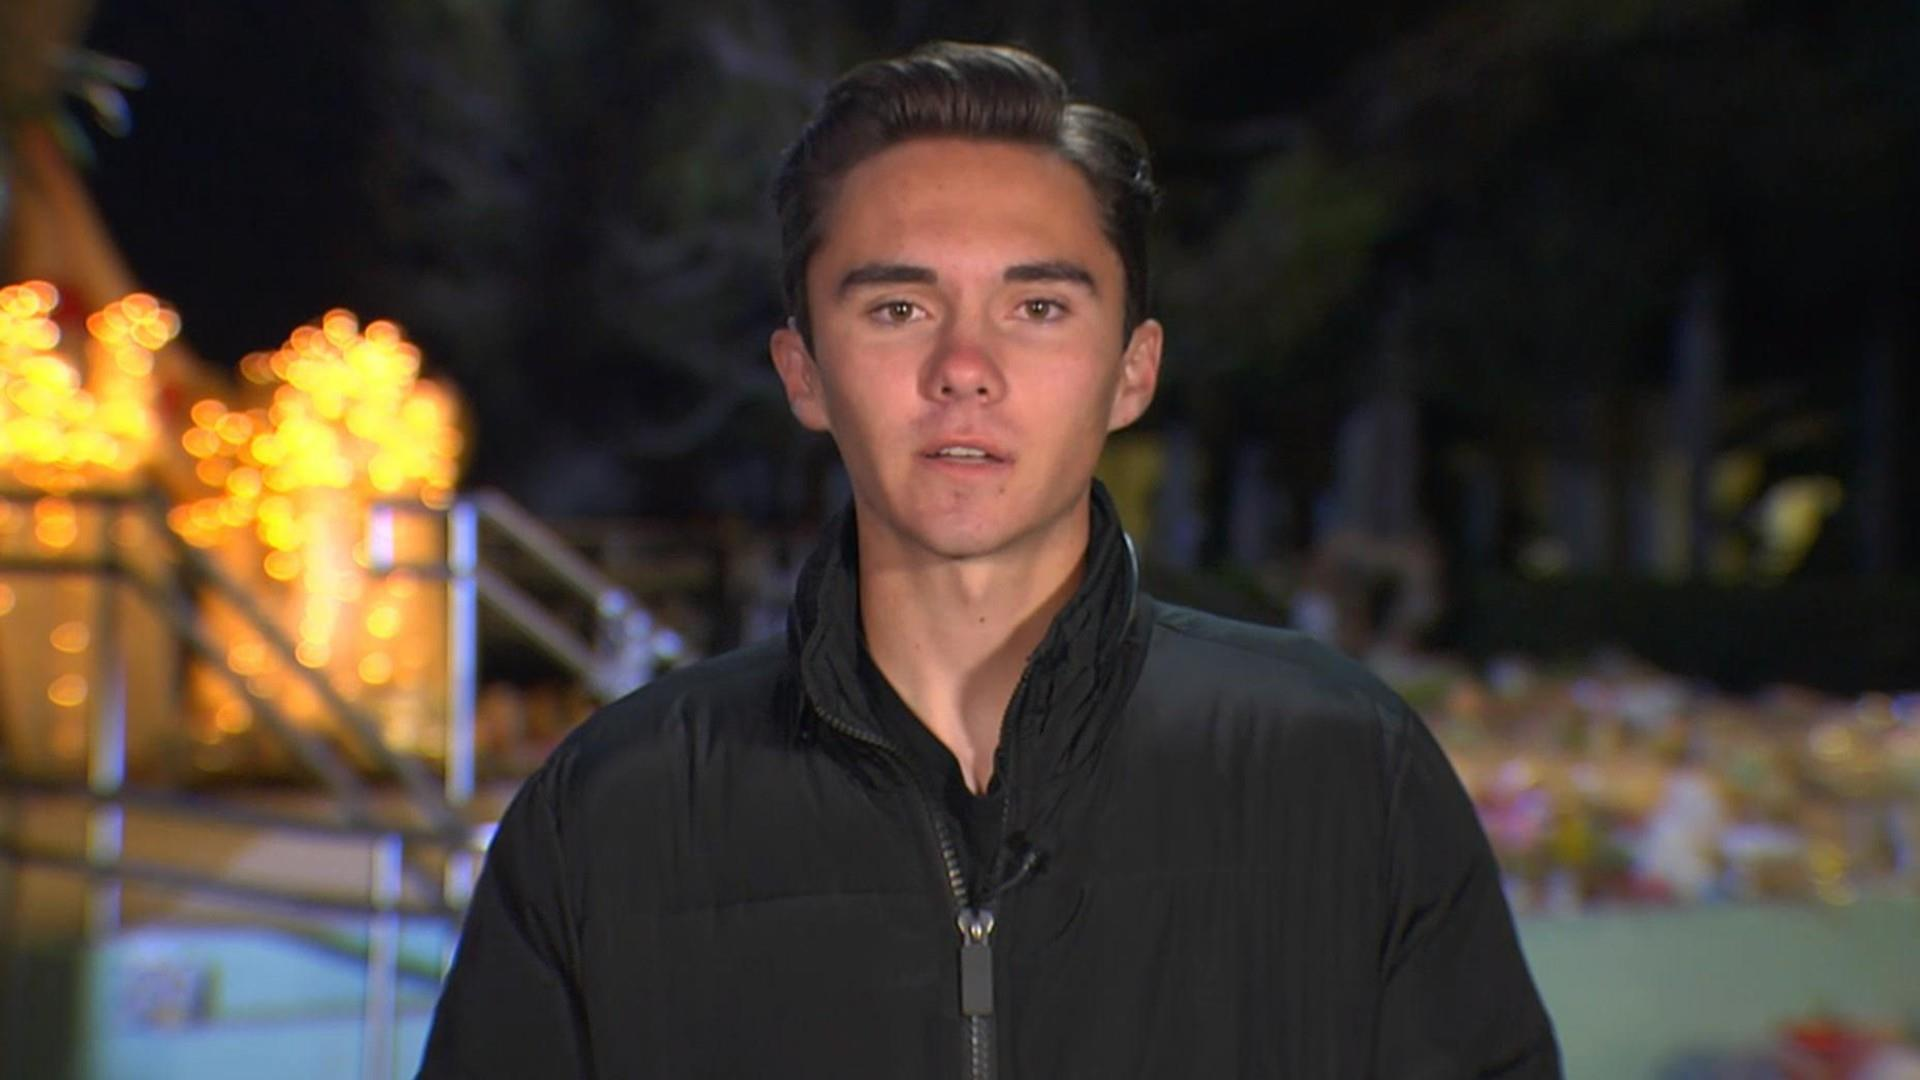 Parkland survivor David Hogg: 'Now we are seeing action ...